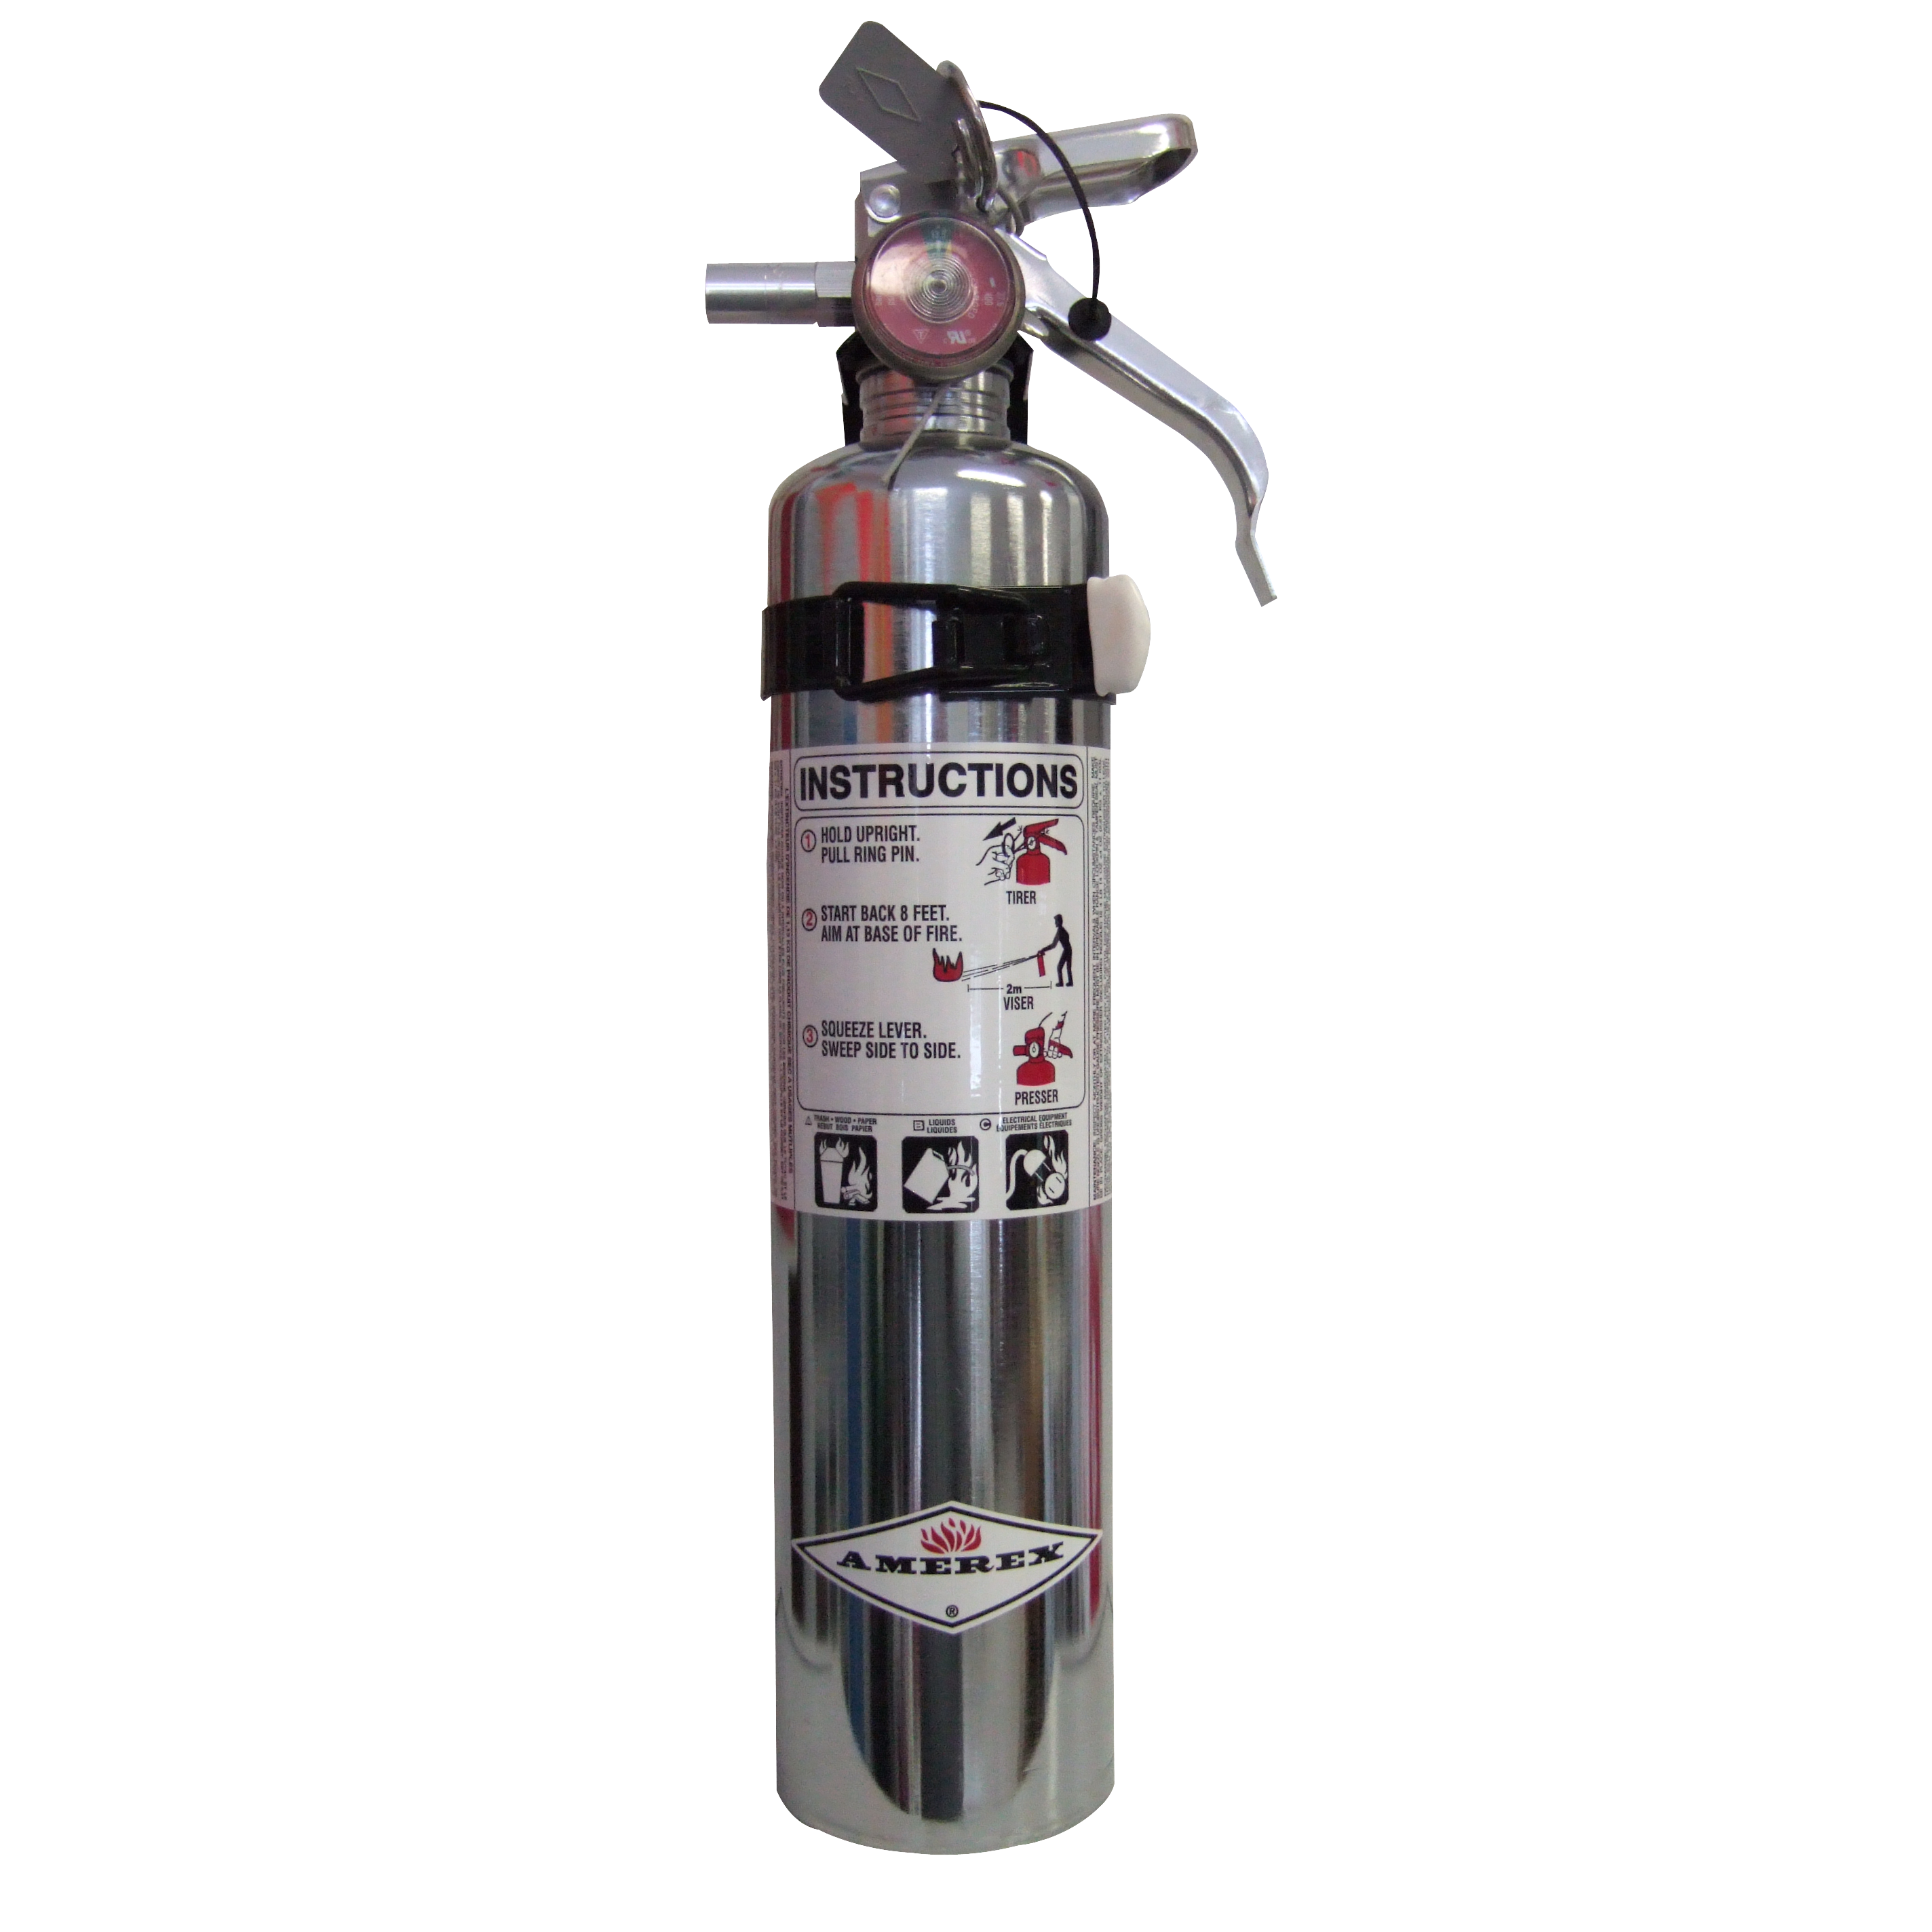 portable fire extinguisher with powder chromed 25 lbs type abc ulc 1a 10bc with vehicle hook fire exti hierarchical network design boston consulting group omp fire extinguisher wiring diagram at bakdesigns.co